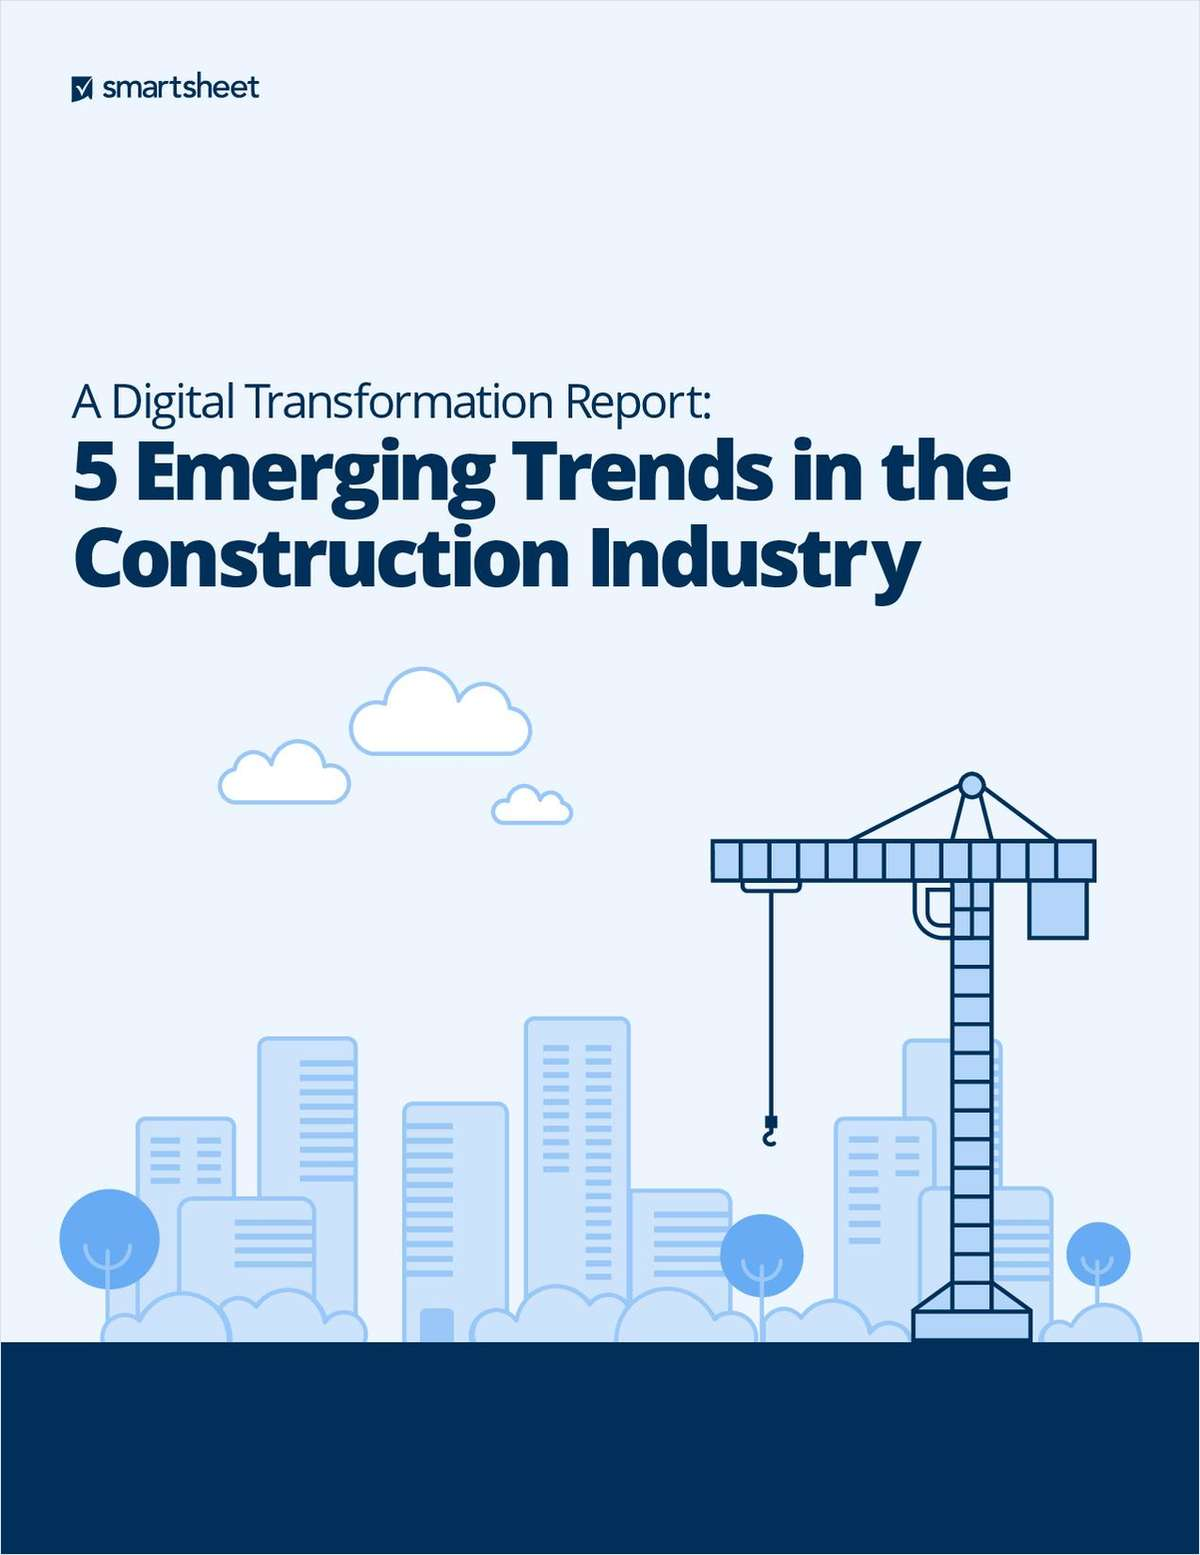 A Digital Transformation Report: 5 Emerging Trends in the Construction Industry